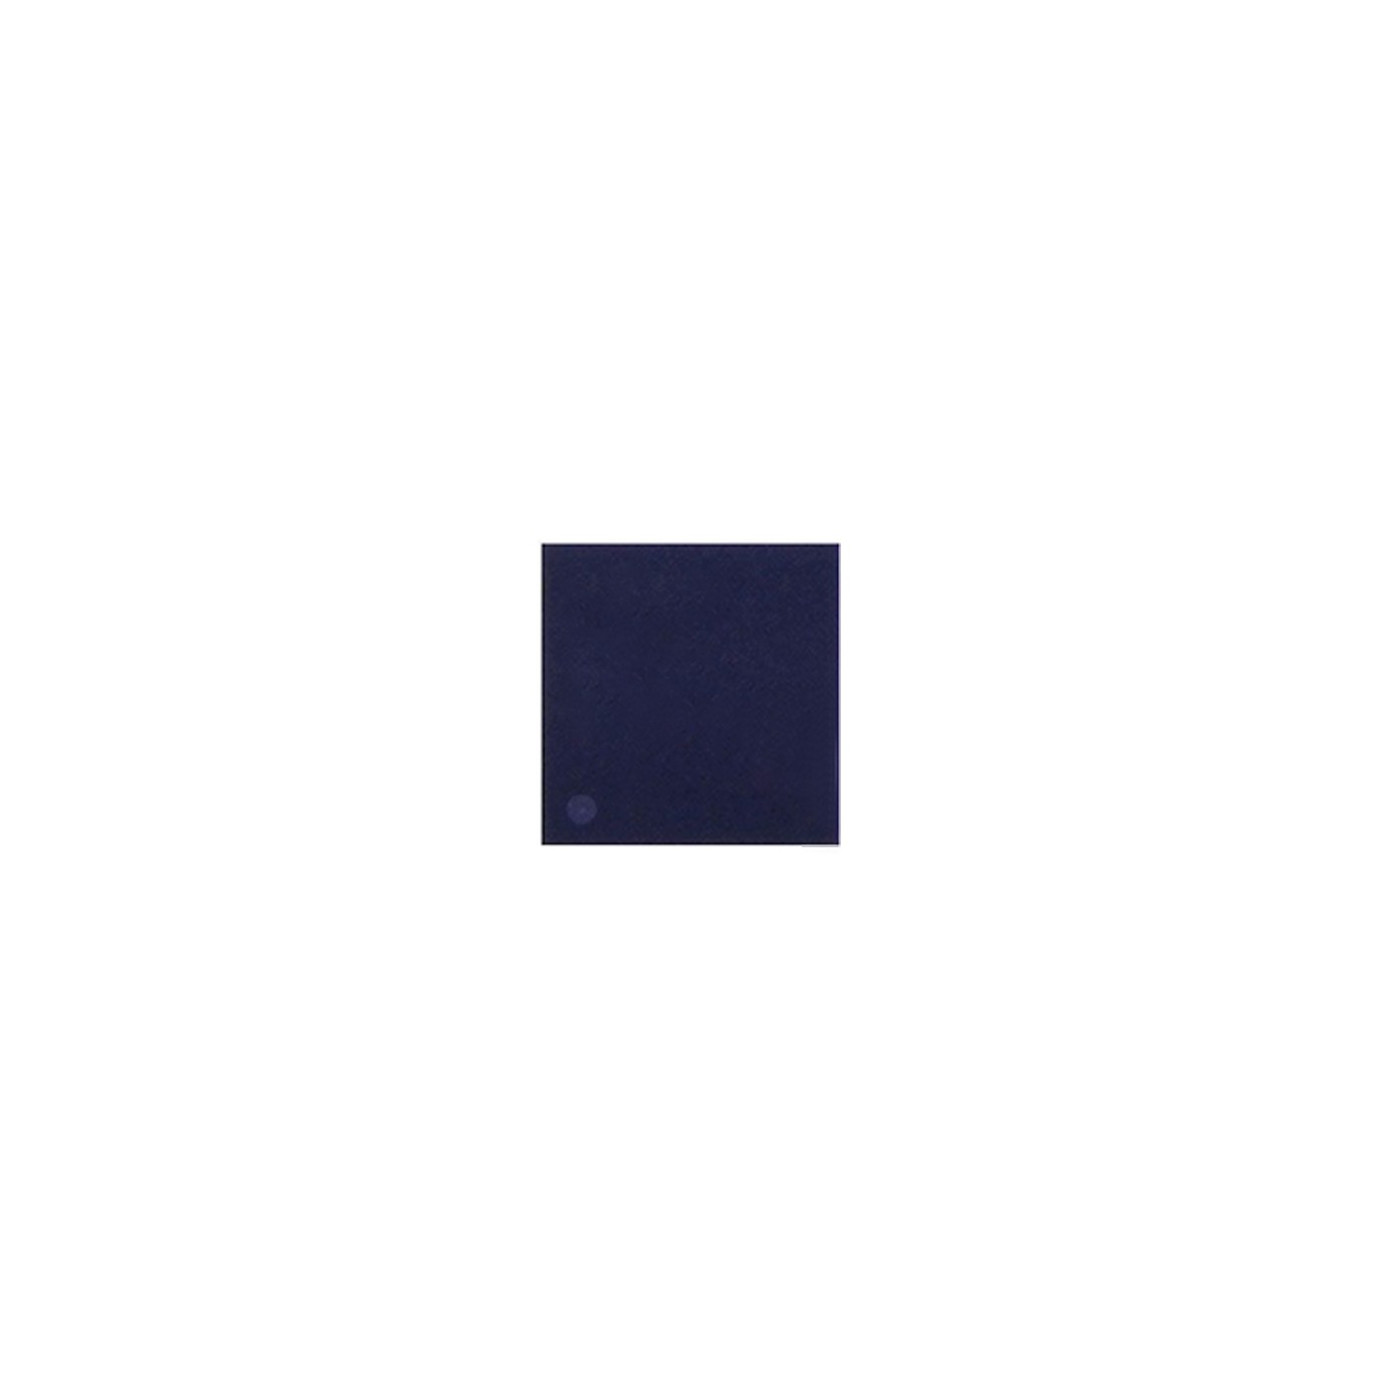 PM8019 U_PMICRF Power Management IC chip for iPhone 6 - 6 Plus